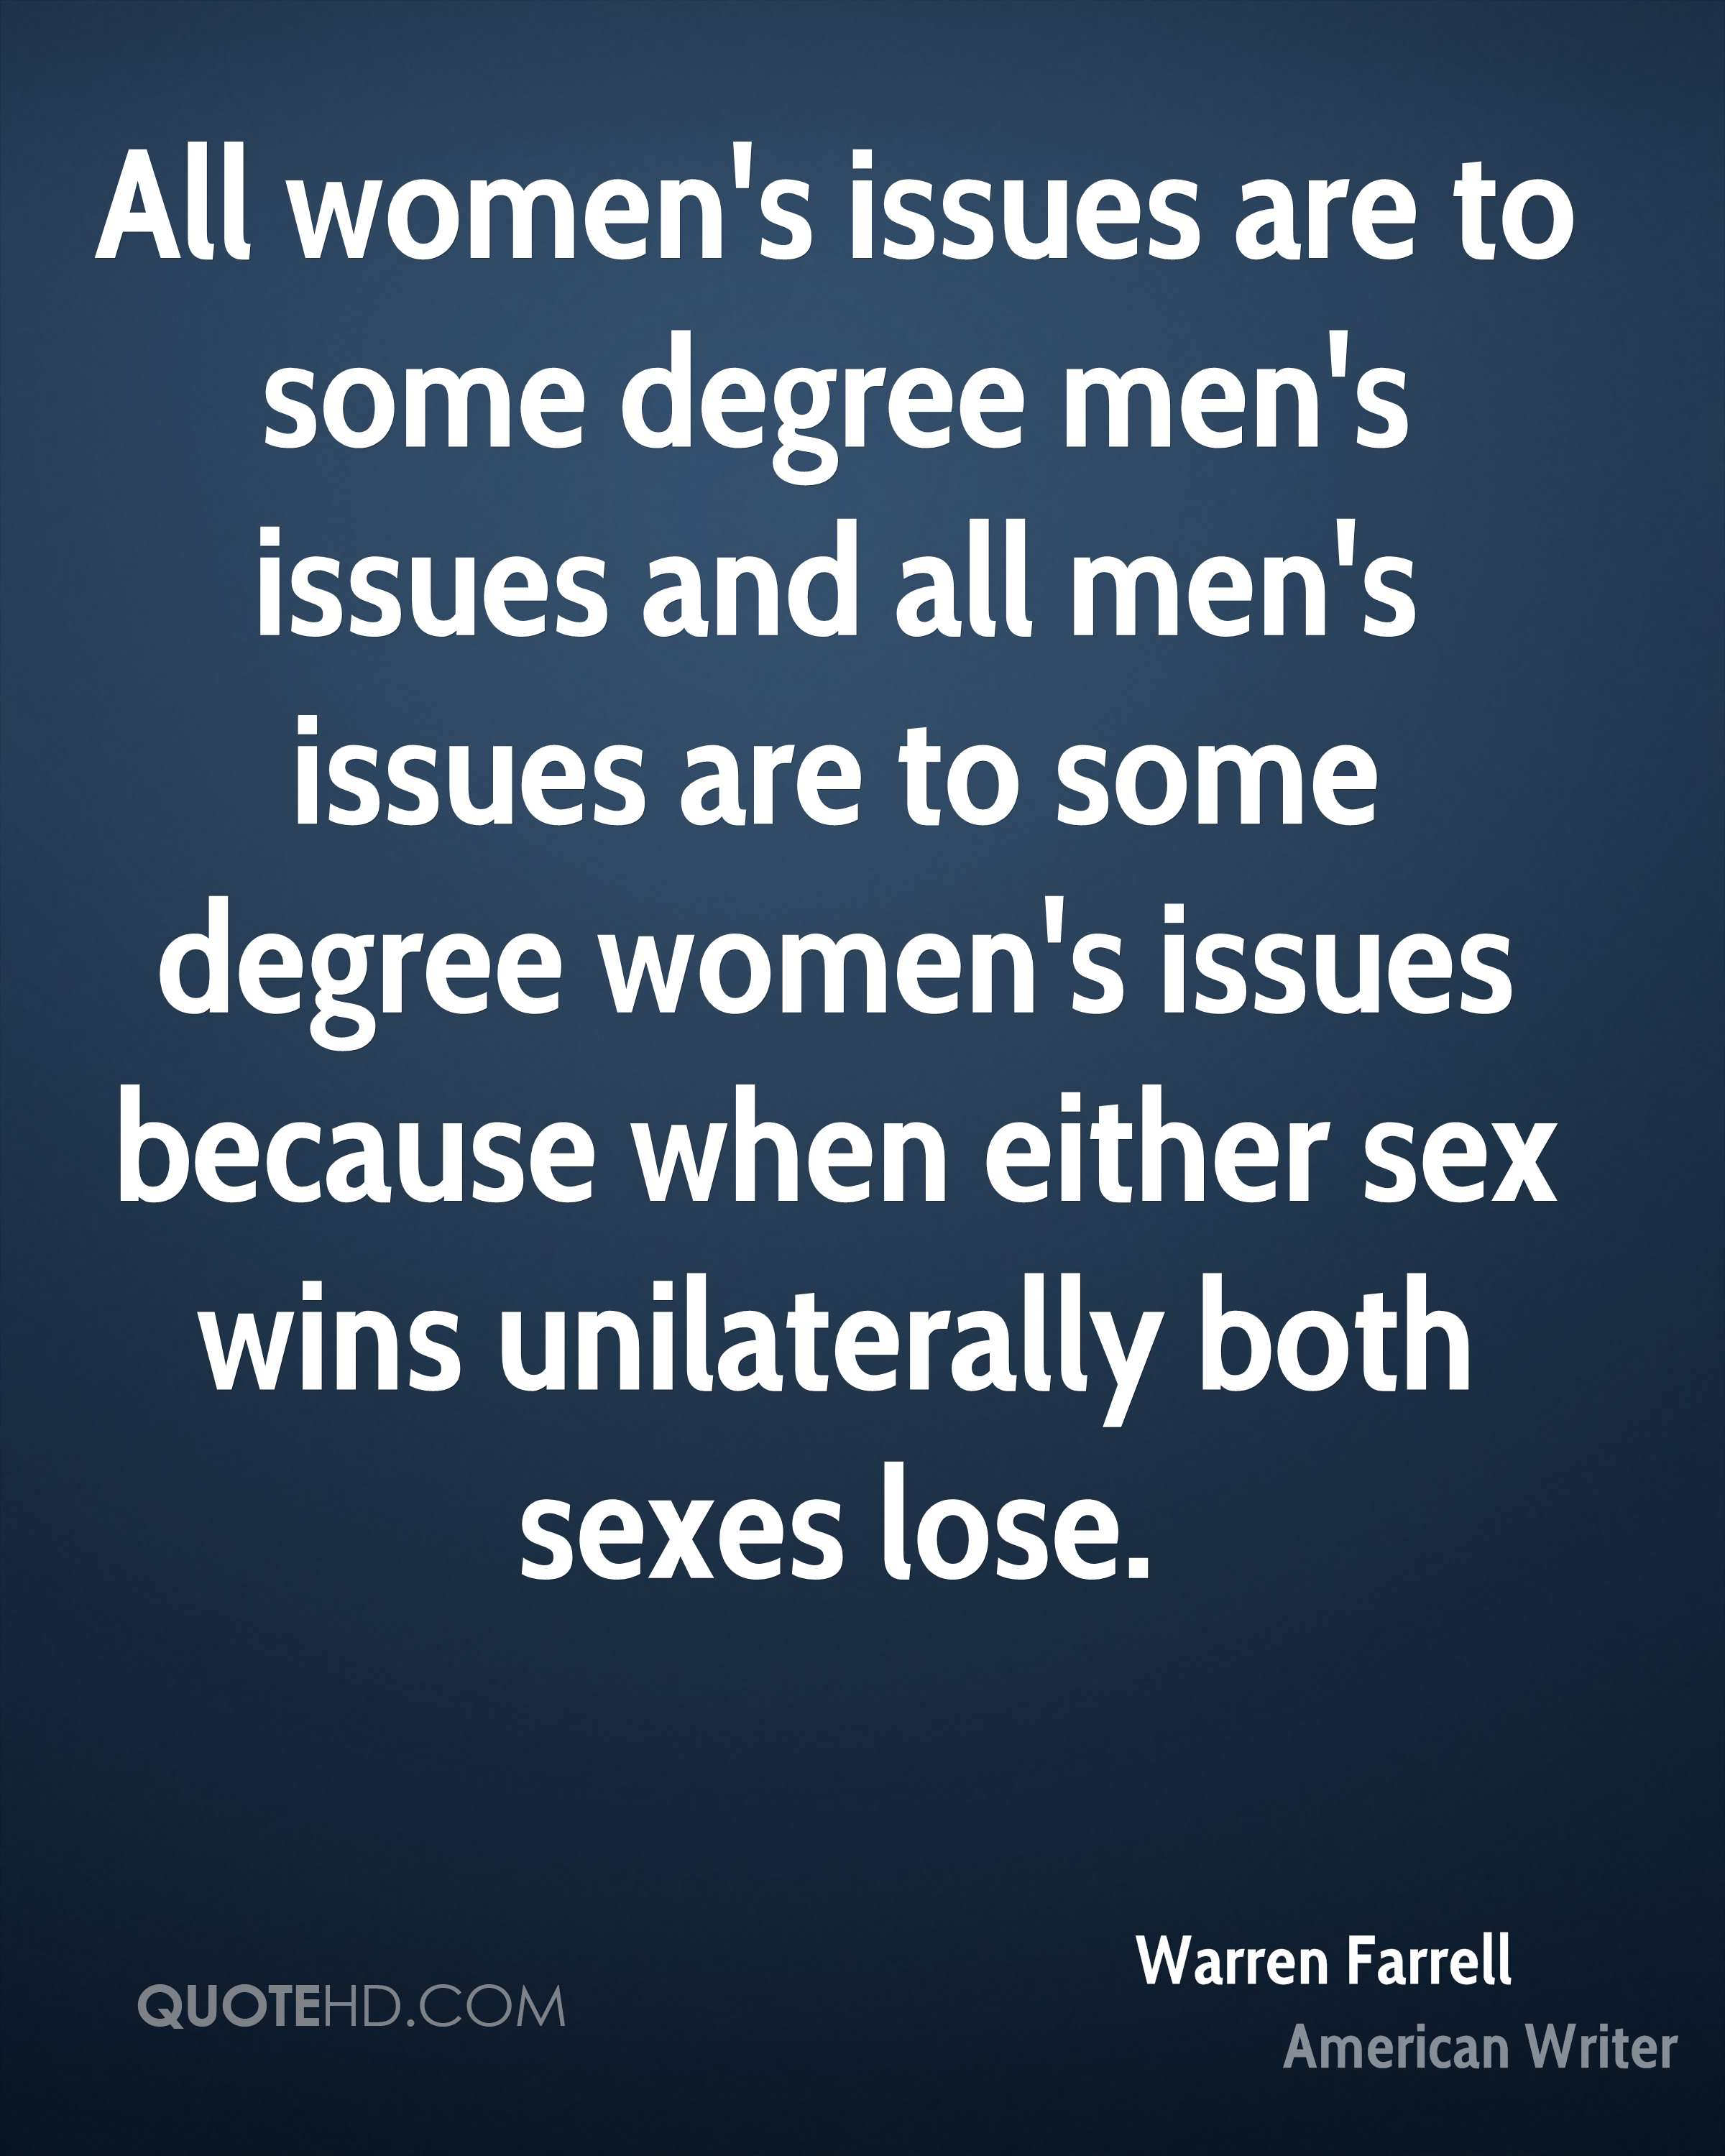 All women's issues are to some degree men's issues and all men's issues are to some degree women's issues because when either sex wins unilaterally both sexes lose.